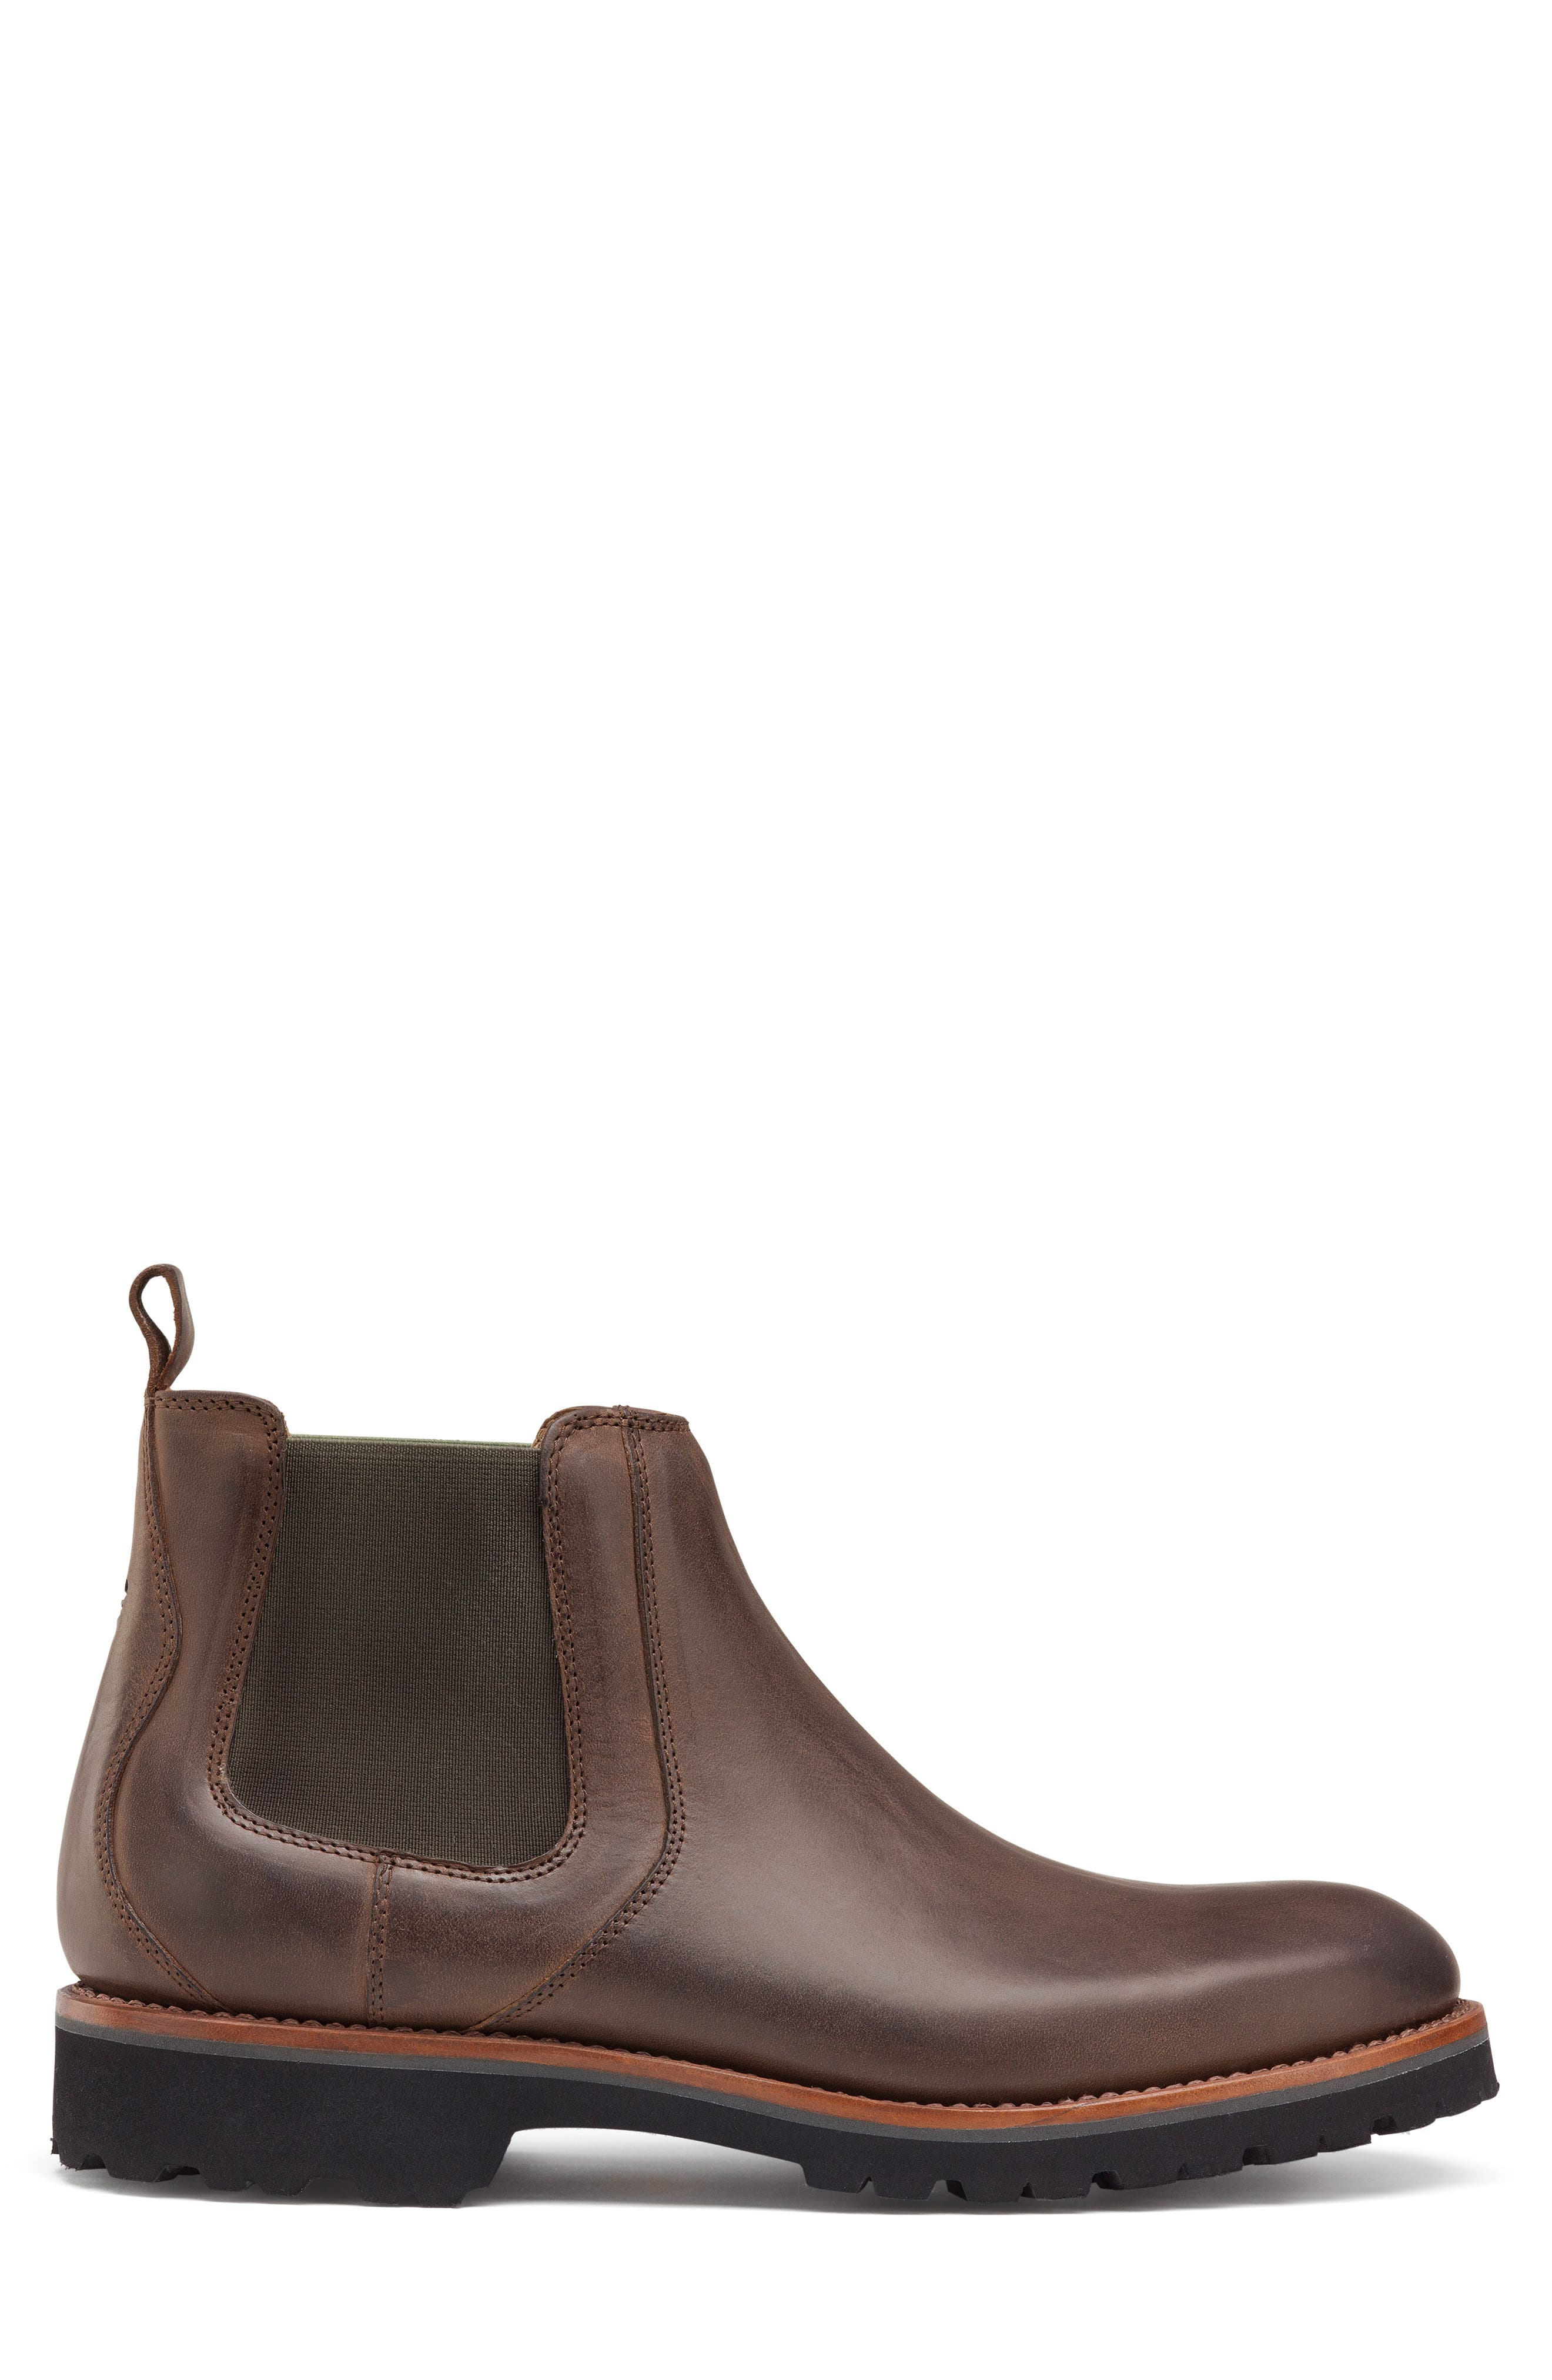 Hastings Lugged Chelsea Boot,                             Alternate thumbnail 3, color,                             BROWN LEATHER